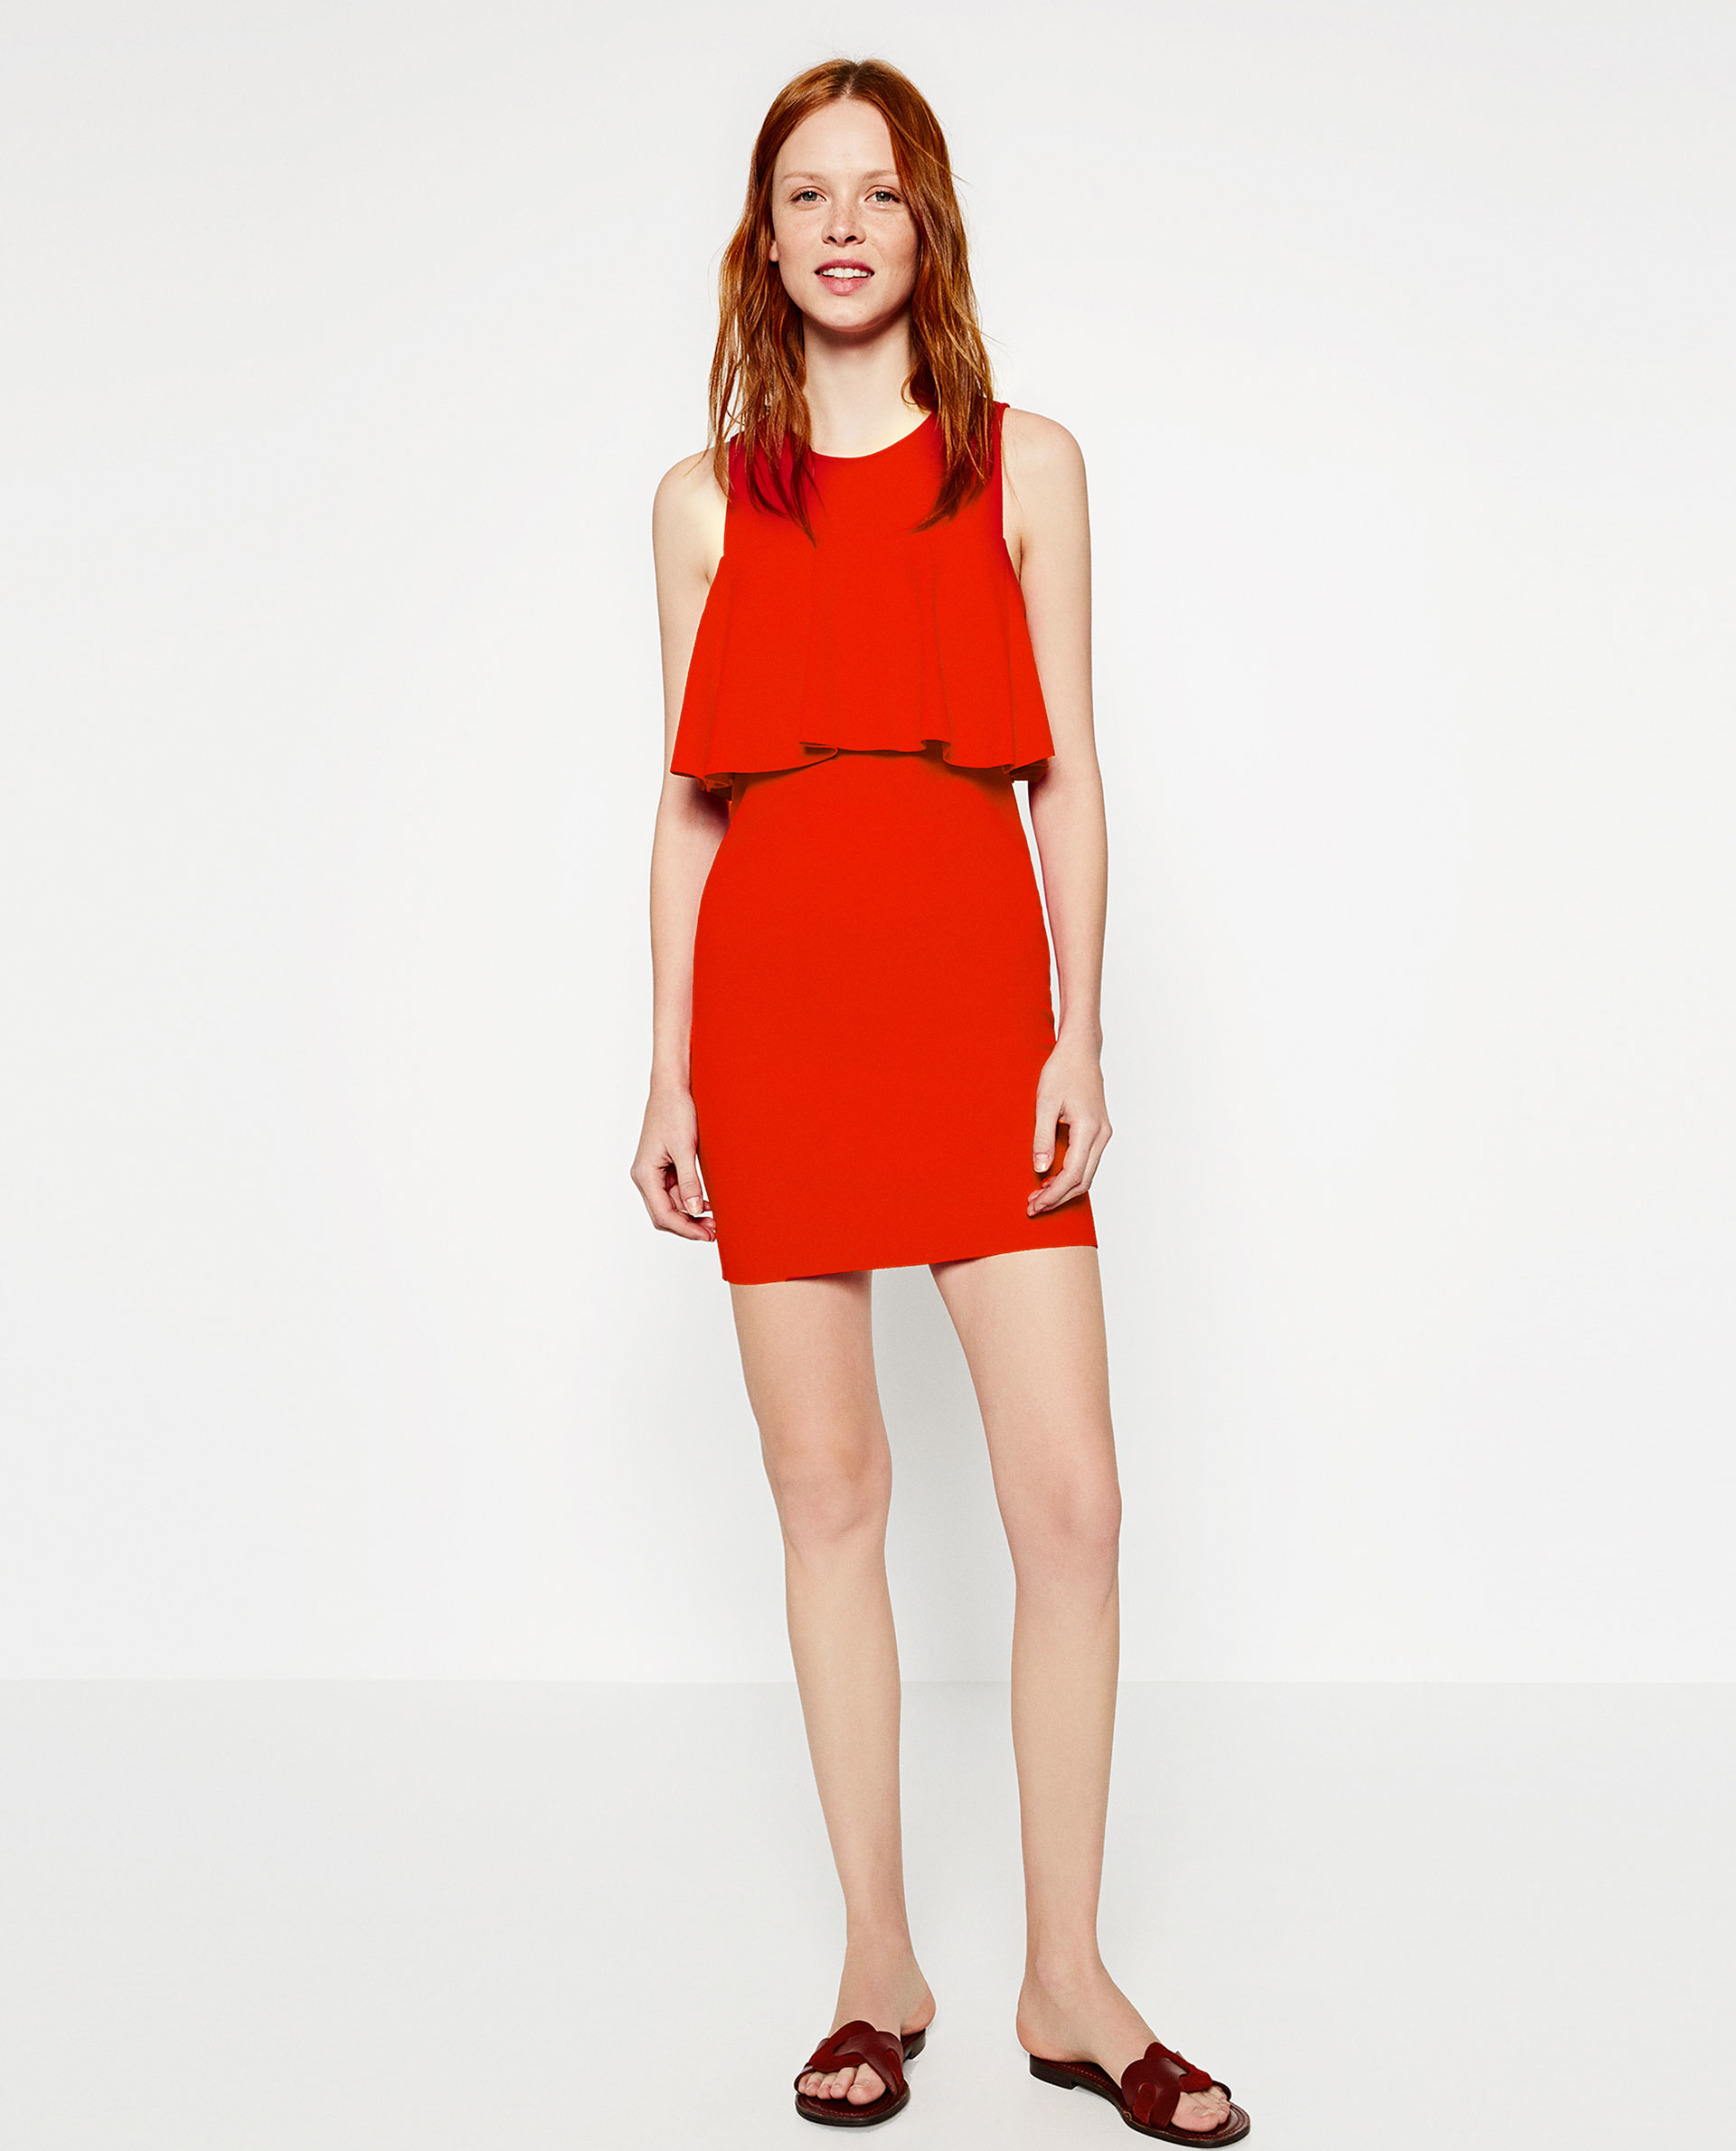 Zara Dress With Front Frill in Red - Lyst